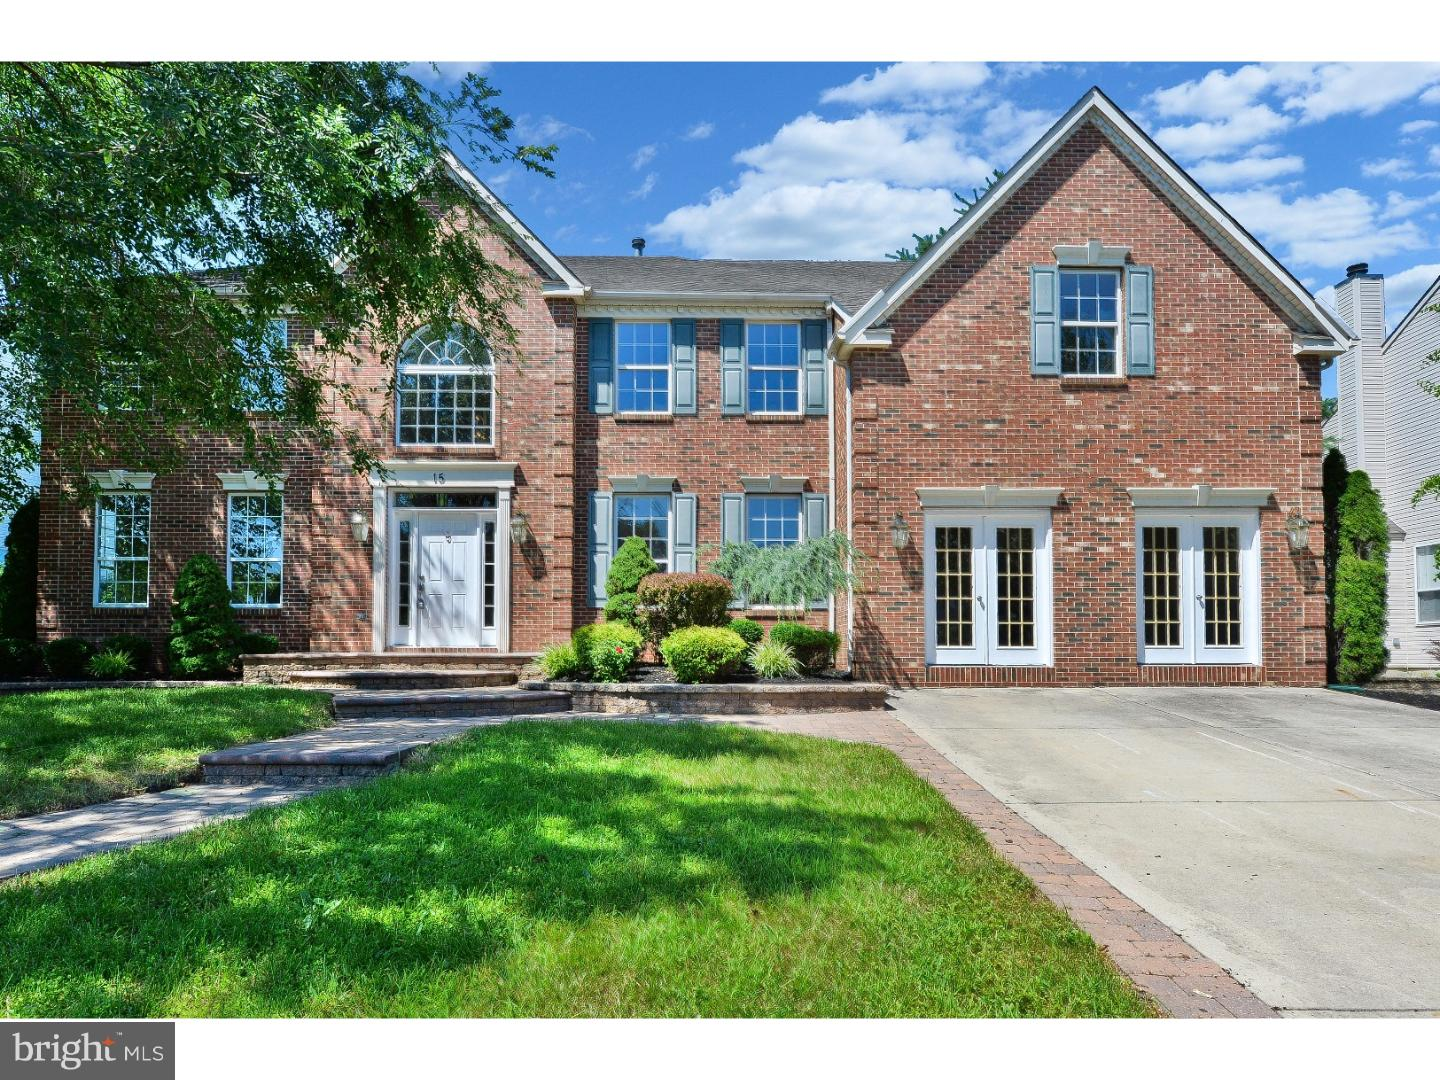 Single Family Home for Sale at 15 BANCROFT Lane Hainesport, New Jersey 08036 United States